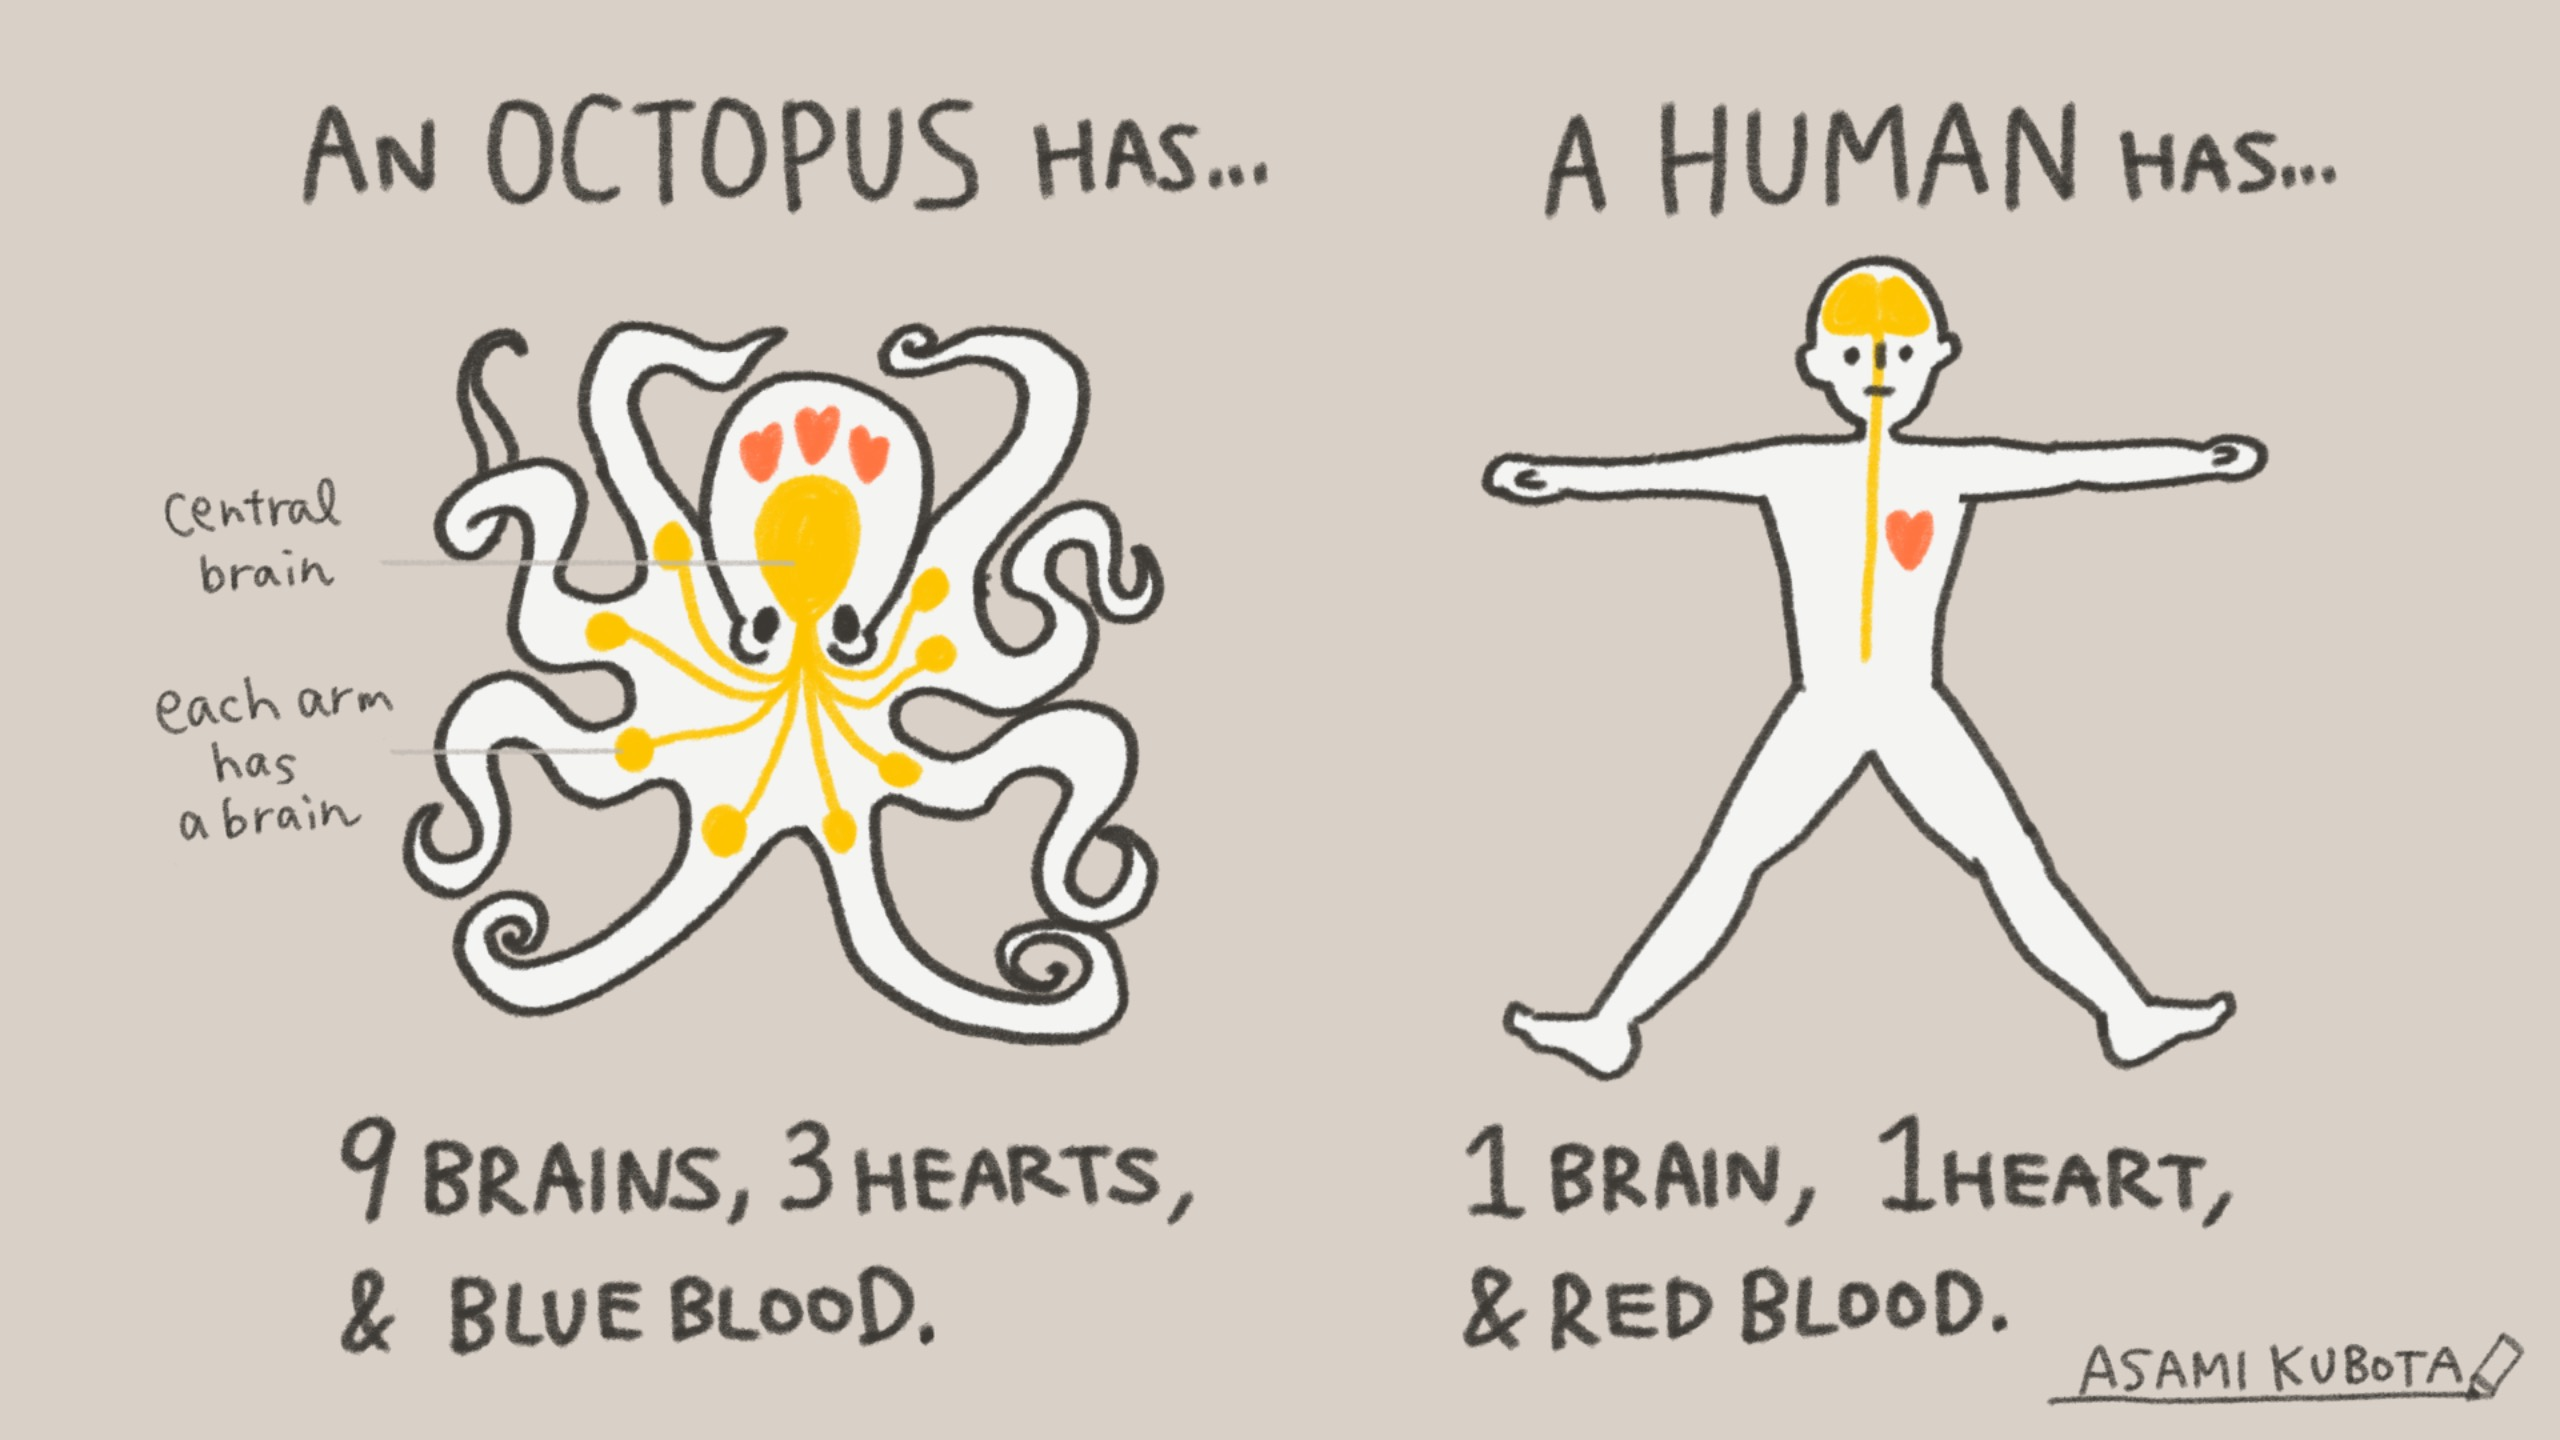 Octopus Anatomy vs Human Anatomy